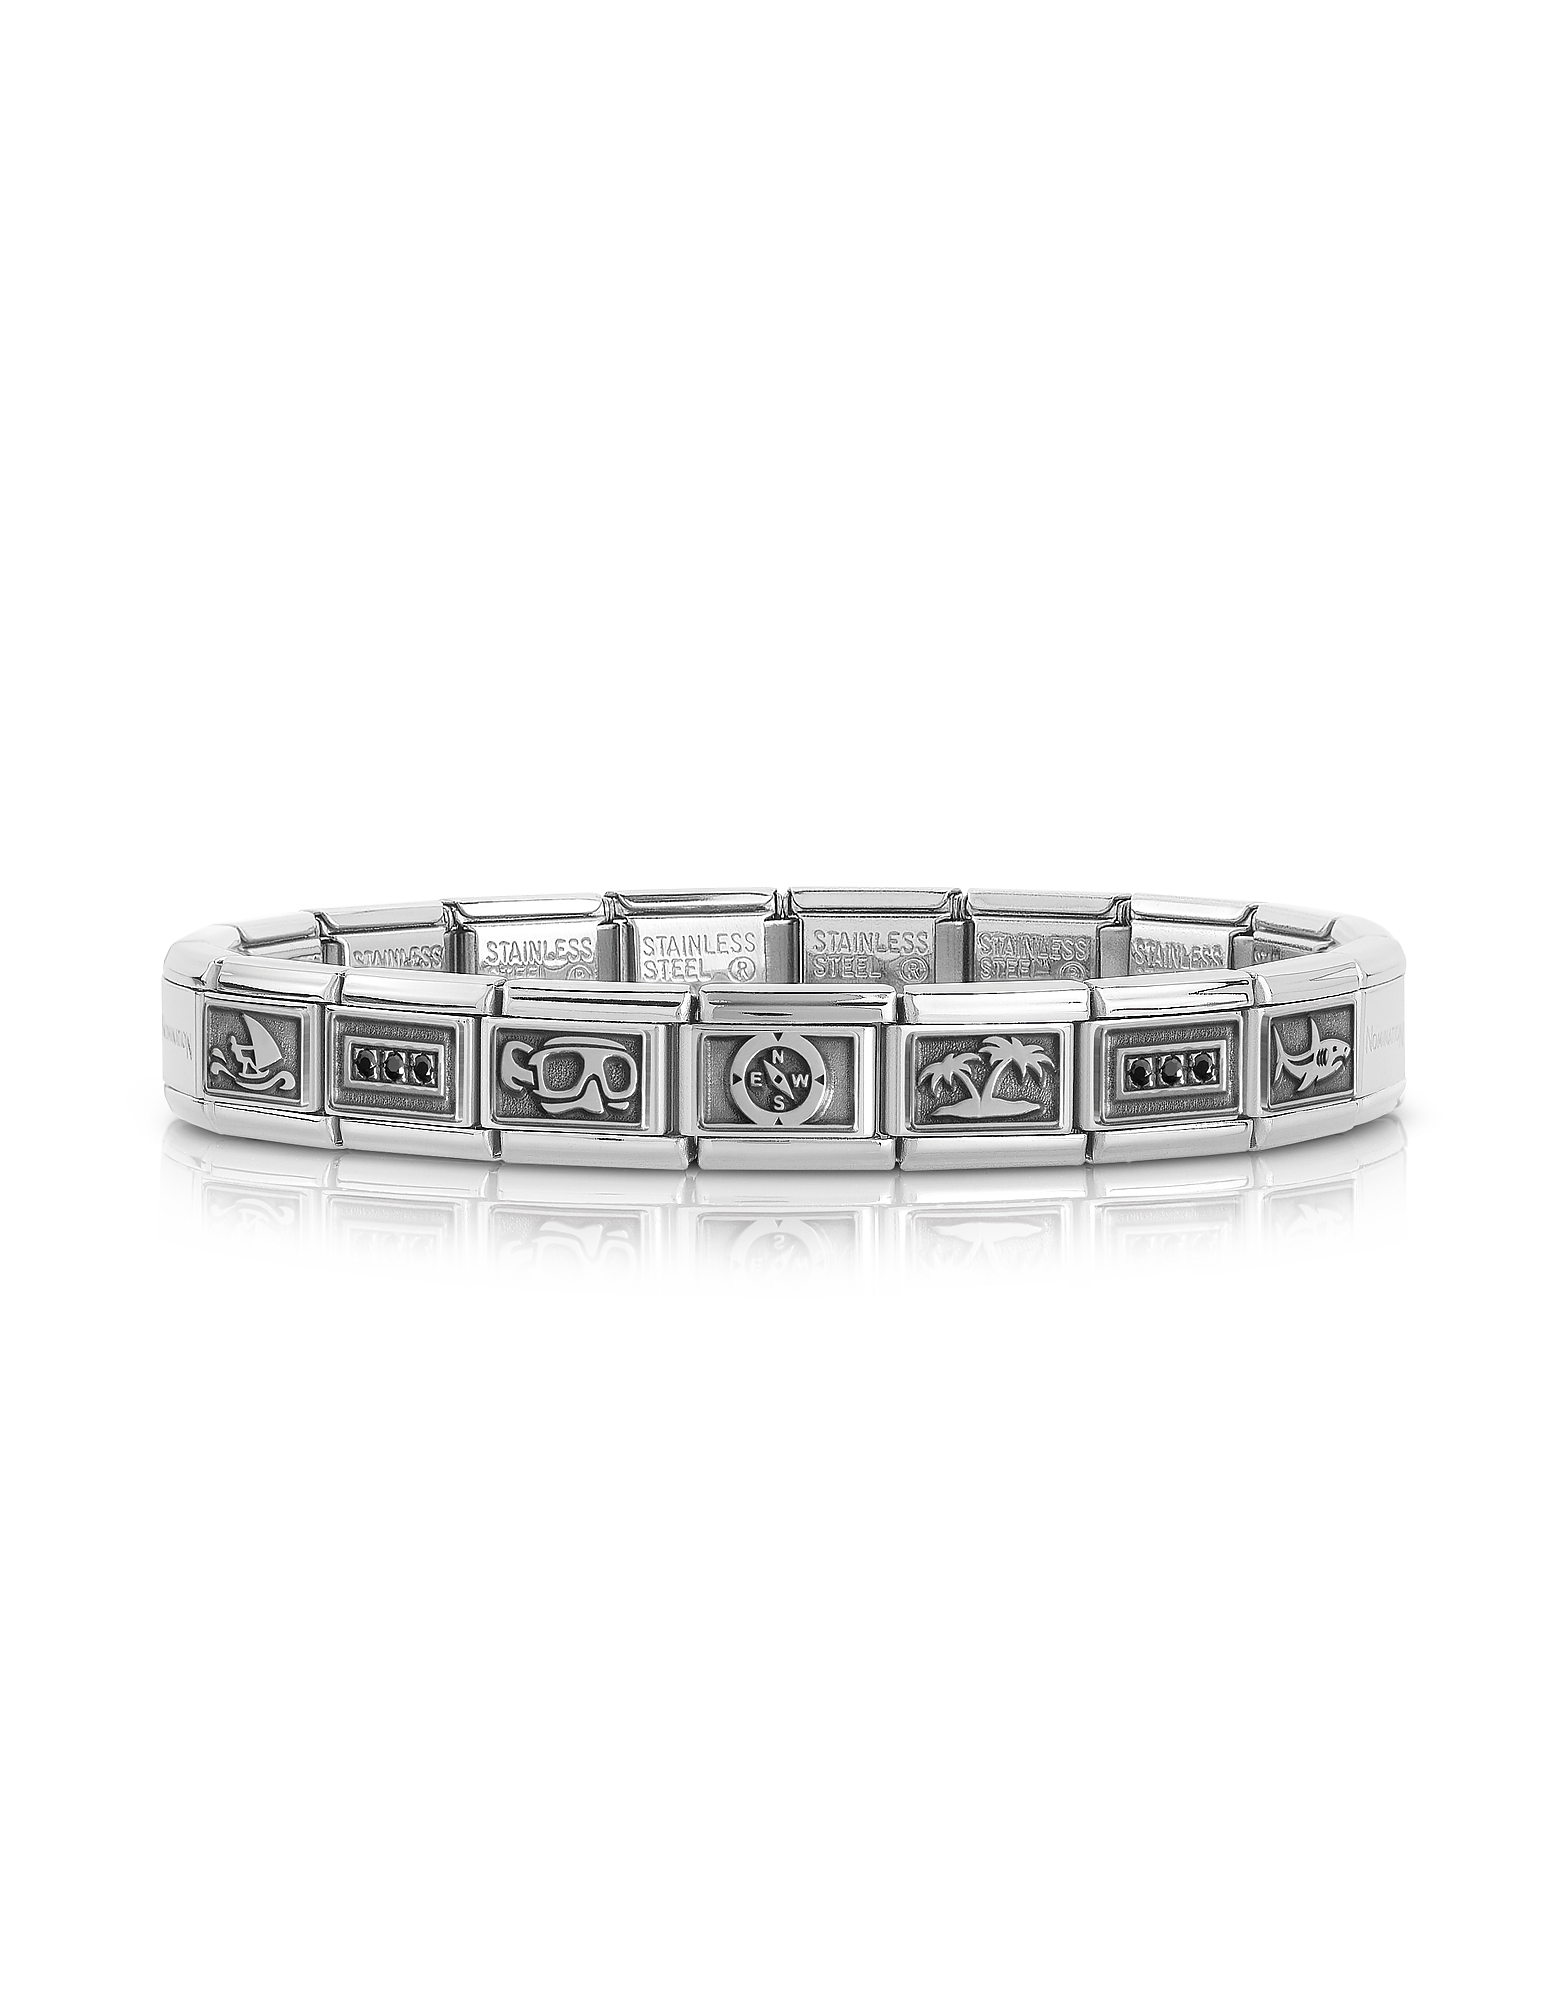 Nomination Men's Bracelets, Summer Sports Stainless Steel Men's Bracelet w/Stearling Silver Symbols